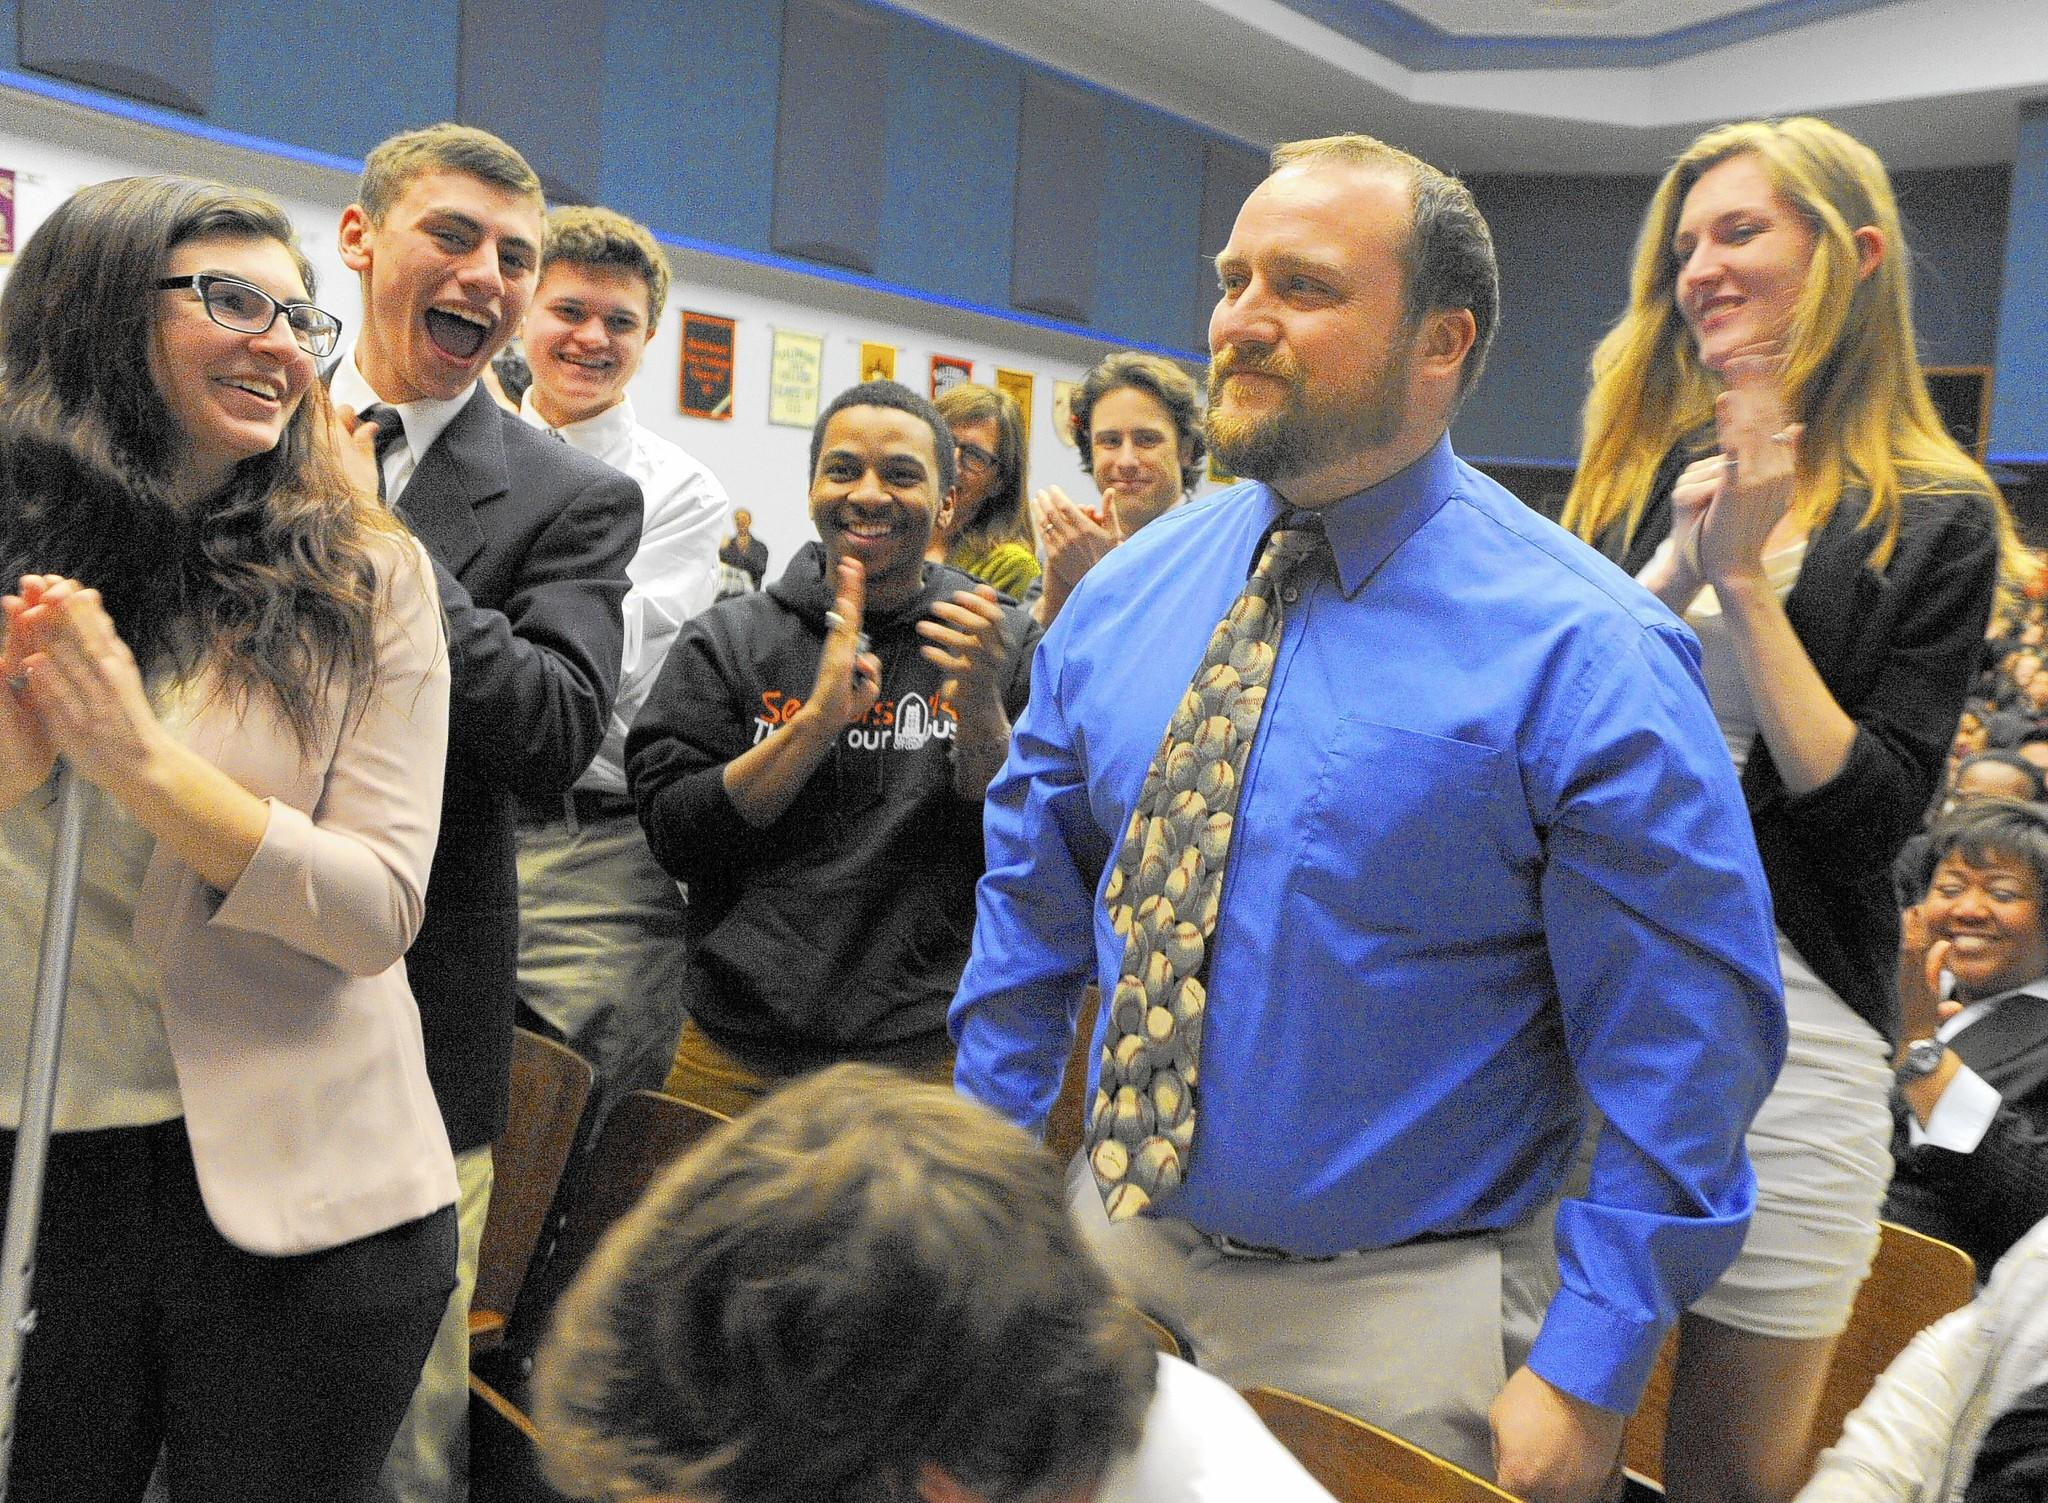 City College English teacher Mark Miazga is surprised with a $25,000 Milken Educator Award as some of his students cheer for him during the announcement.